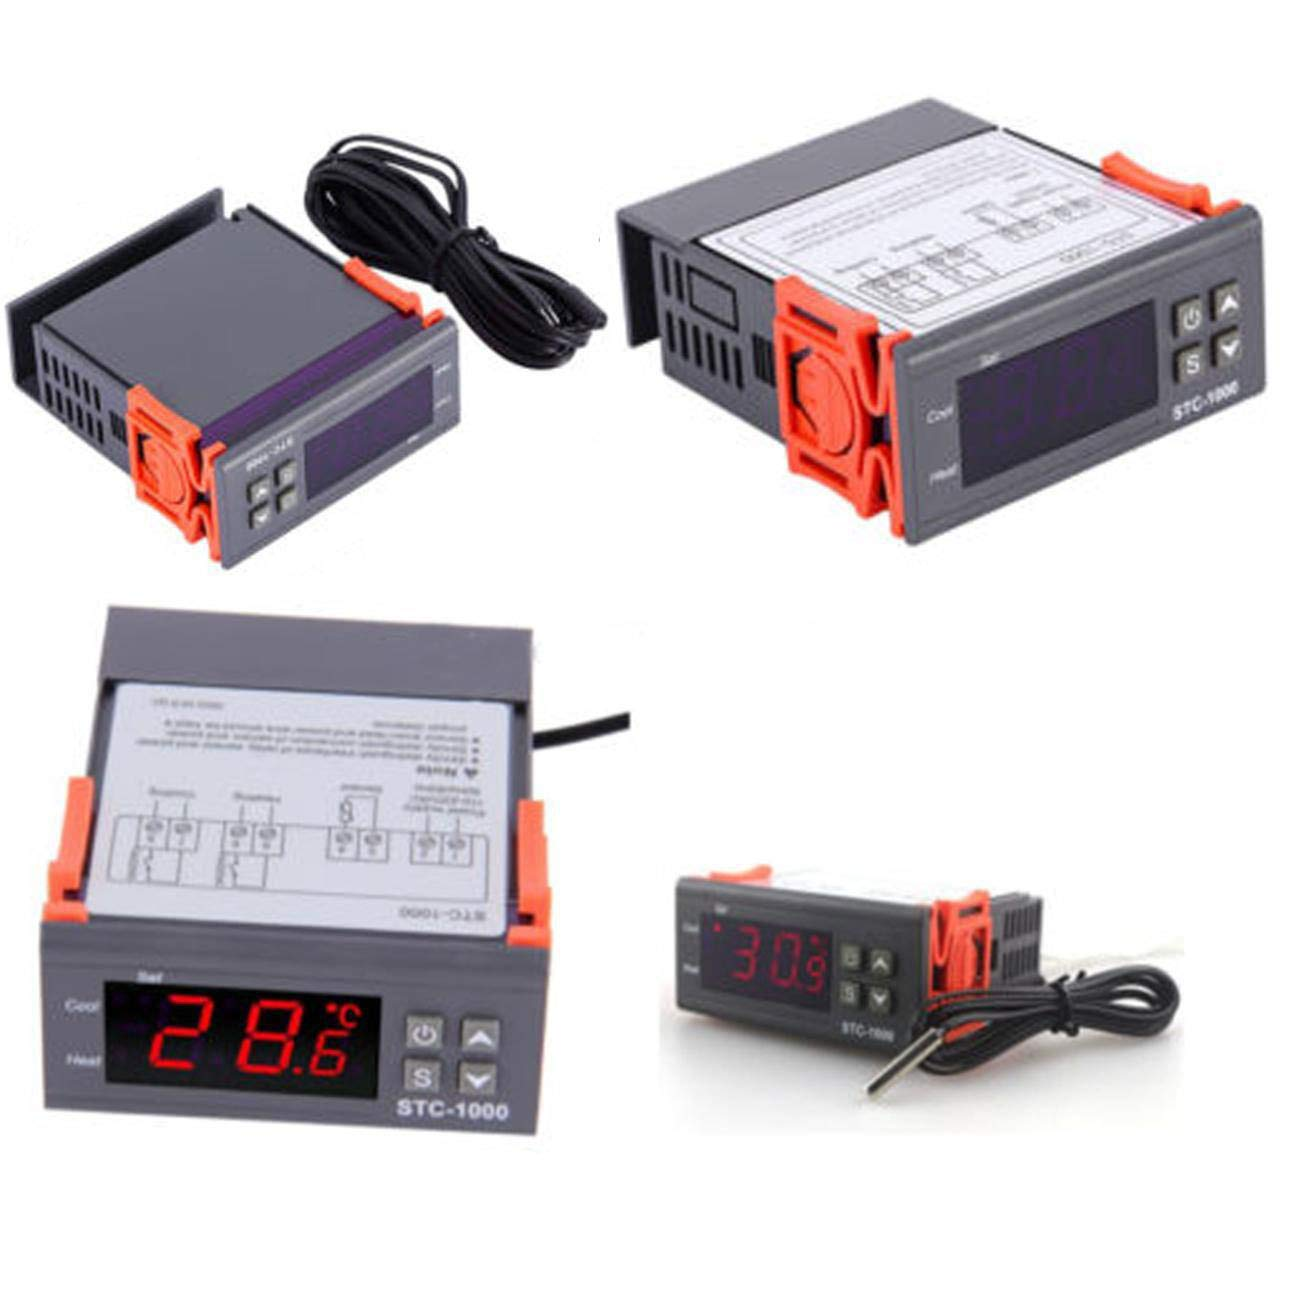 Wichemi 12v 24v 110v 220v Stc 1000 Digital Temperature Controller On Wiring I Wired My Device According To This Diagram Thermostat W Ntc K Industrial Scientific